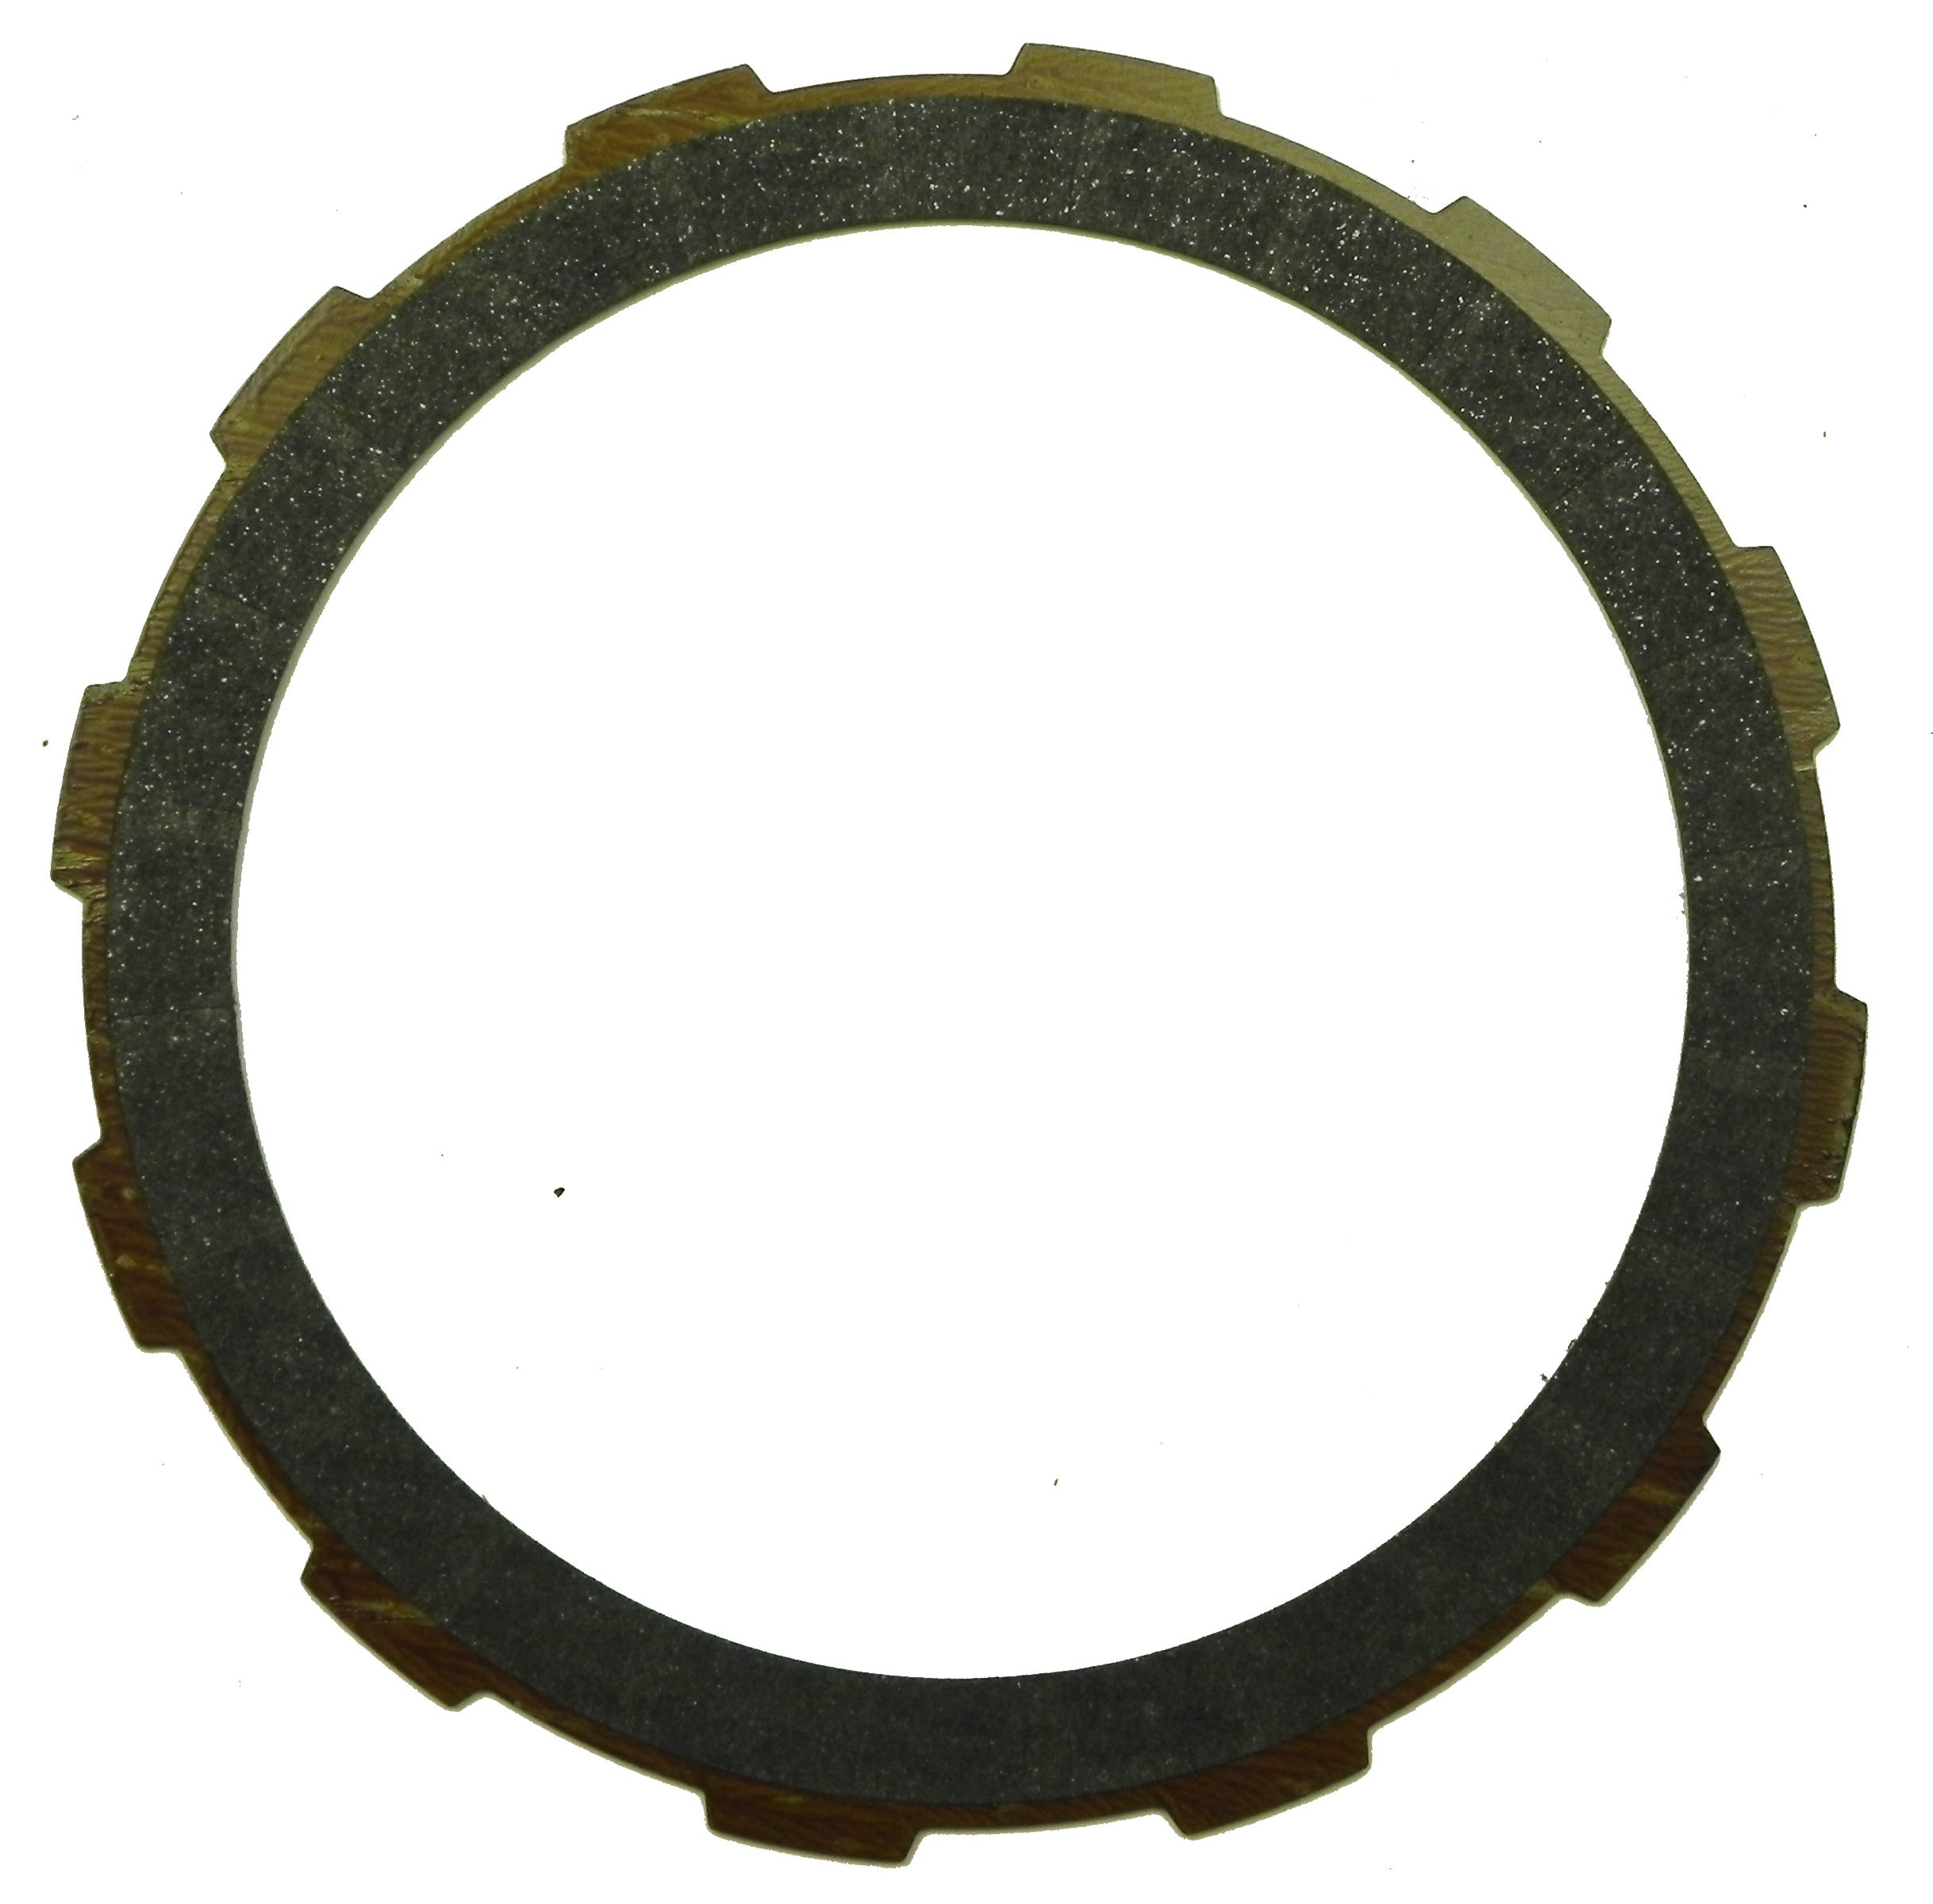 R558425 | 1999-ON Friction Clutch Plate High Energy Coast, Single Sided, OD Spline High Energy